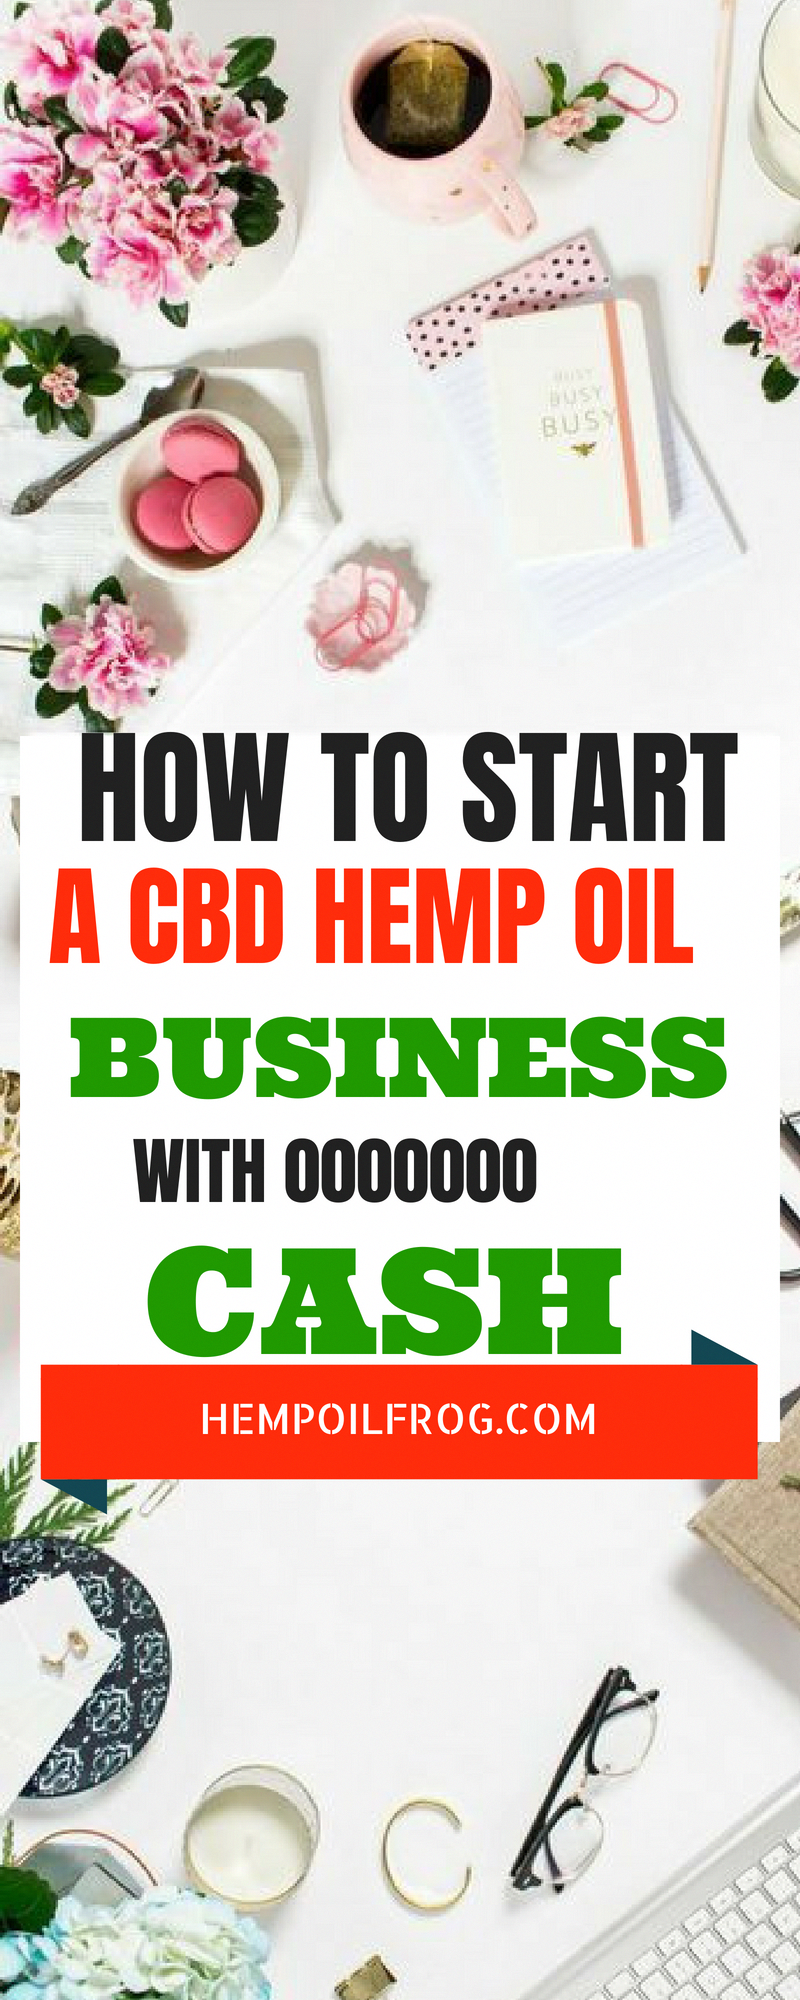 Home Based Business Opportunity Through Ctfo Home